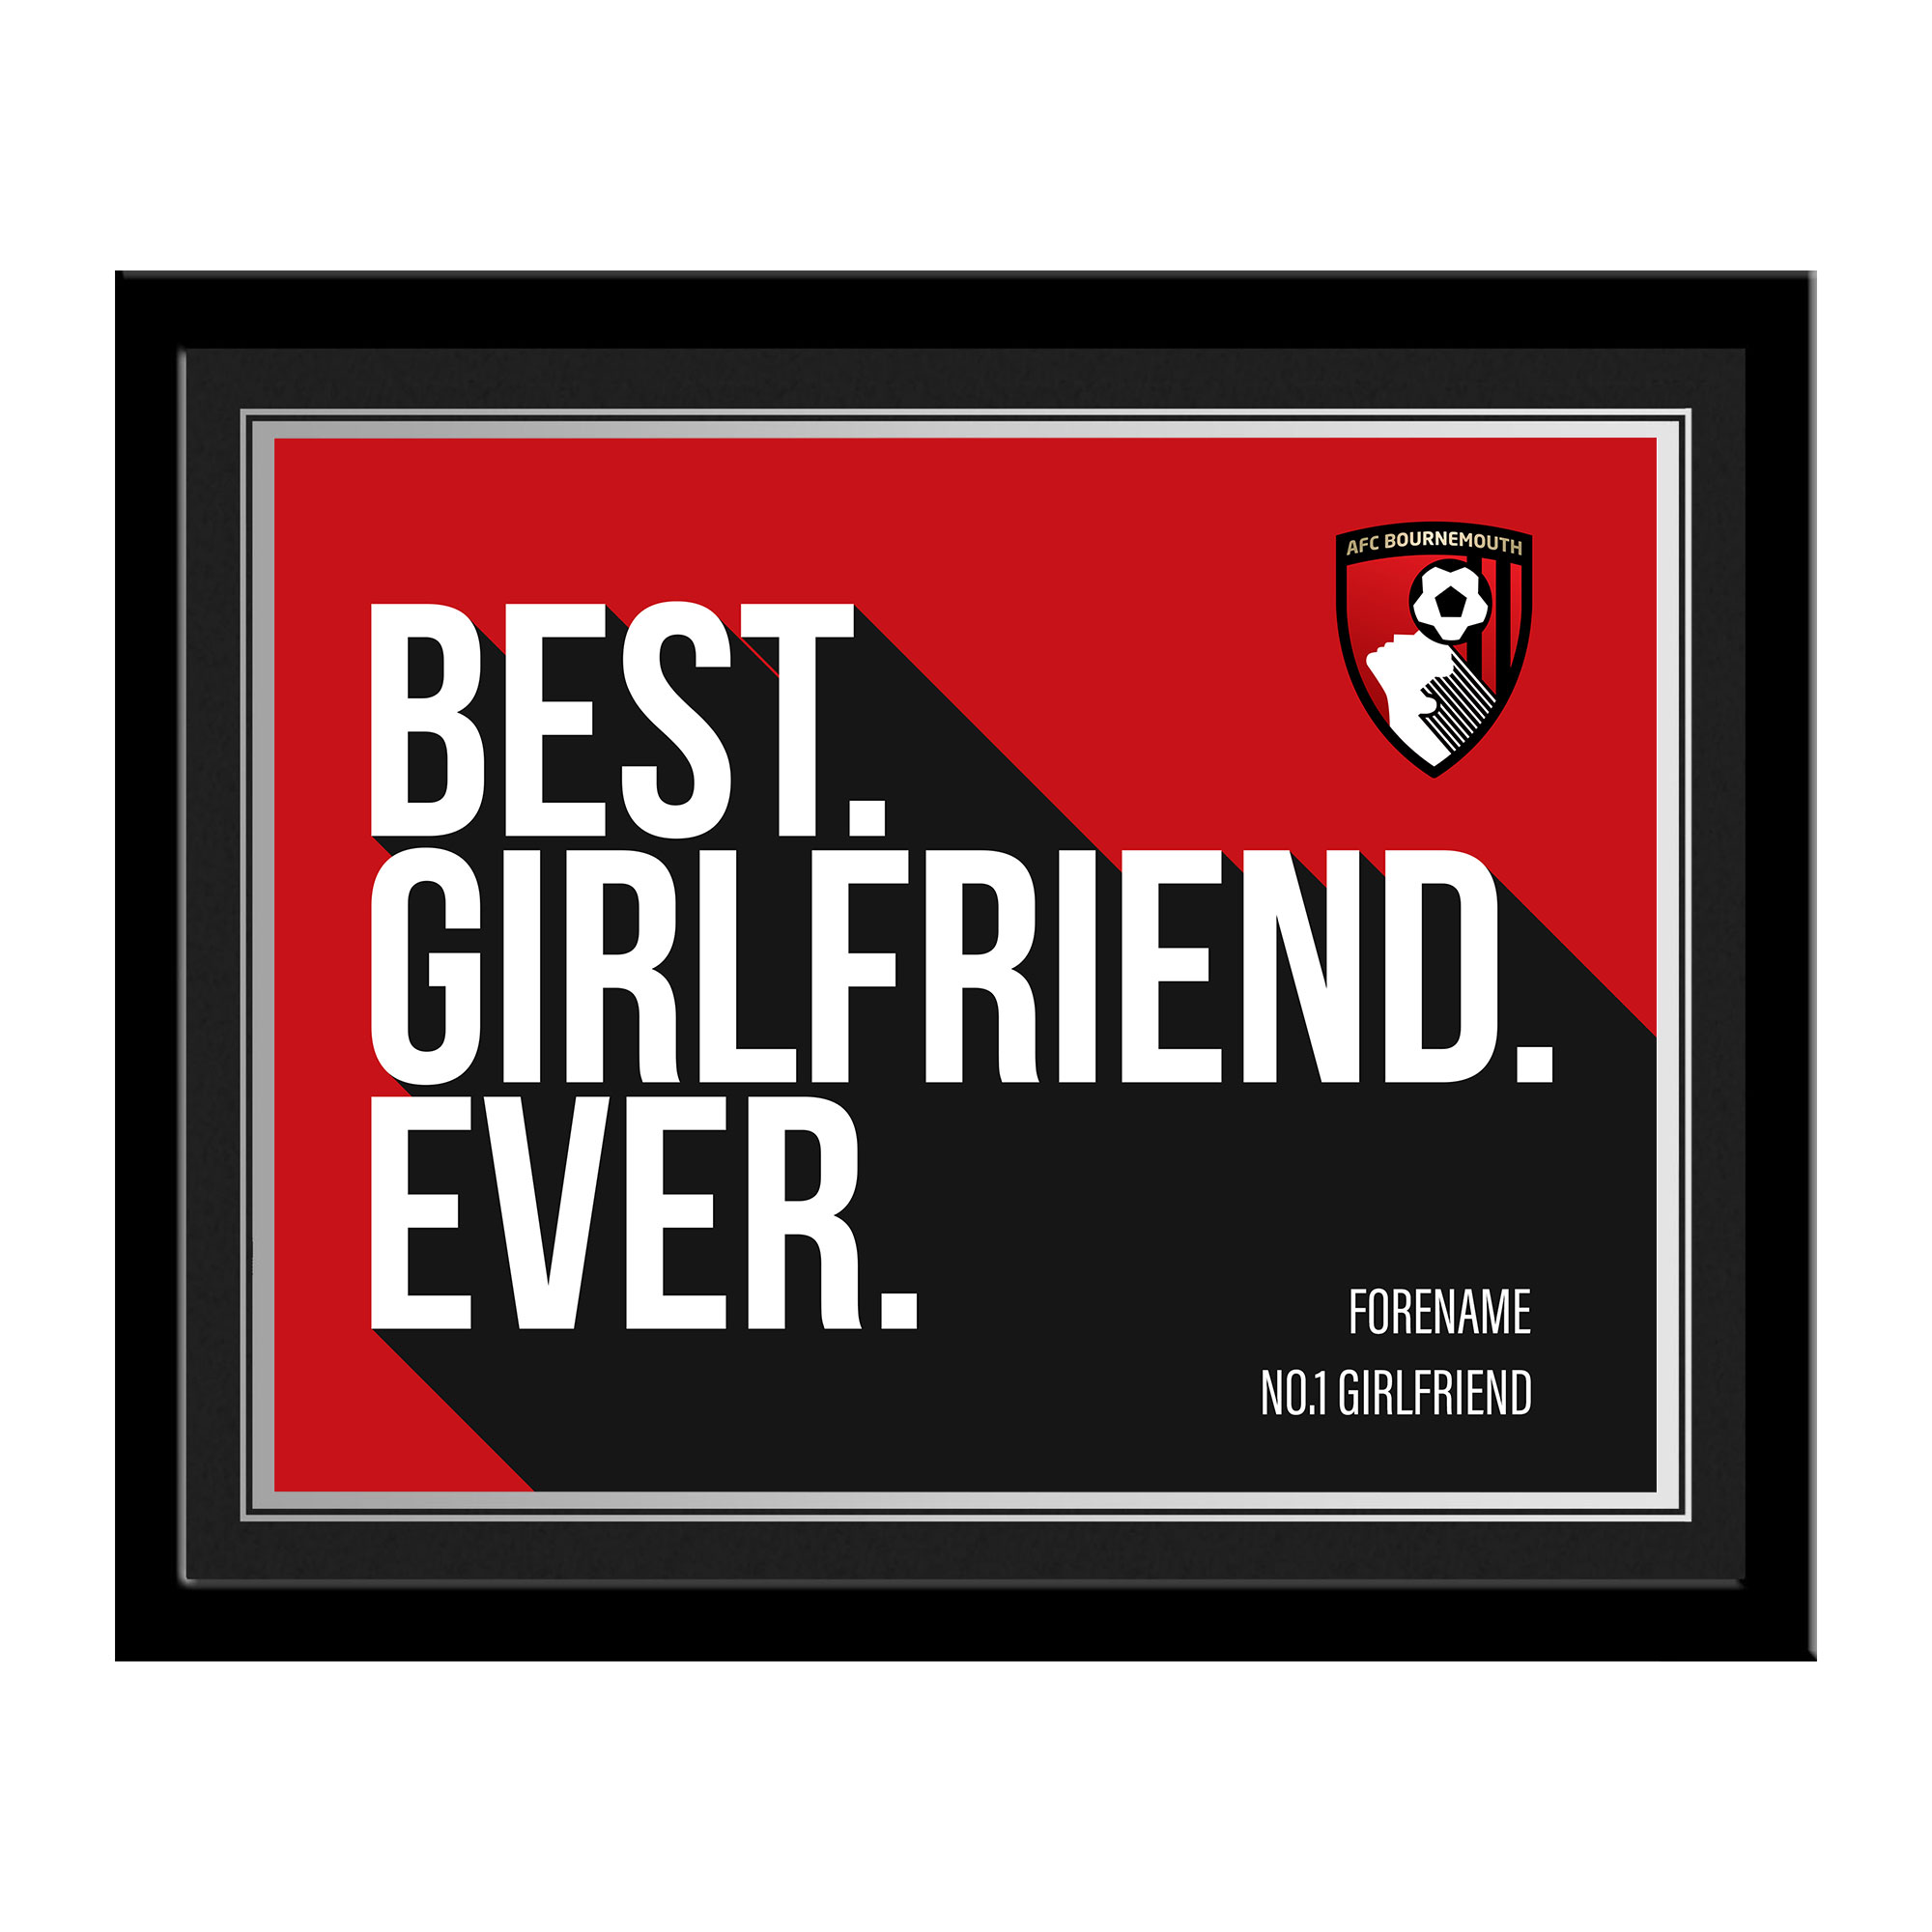 AFC Bournemouth Best Girlfriend Ever 10 x 8 Photo Framed